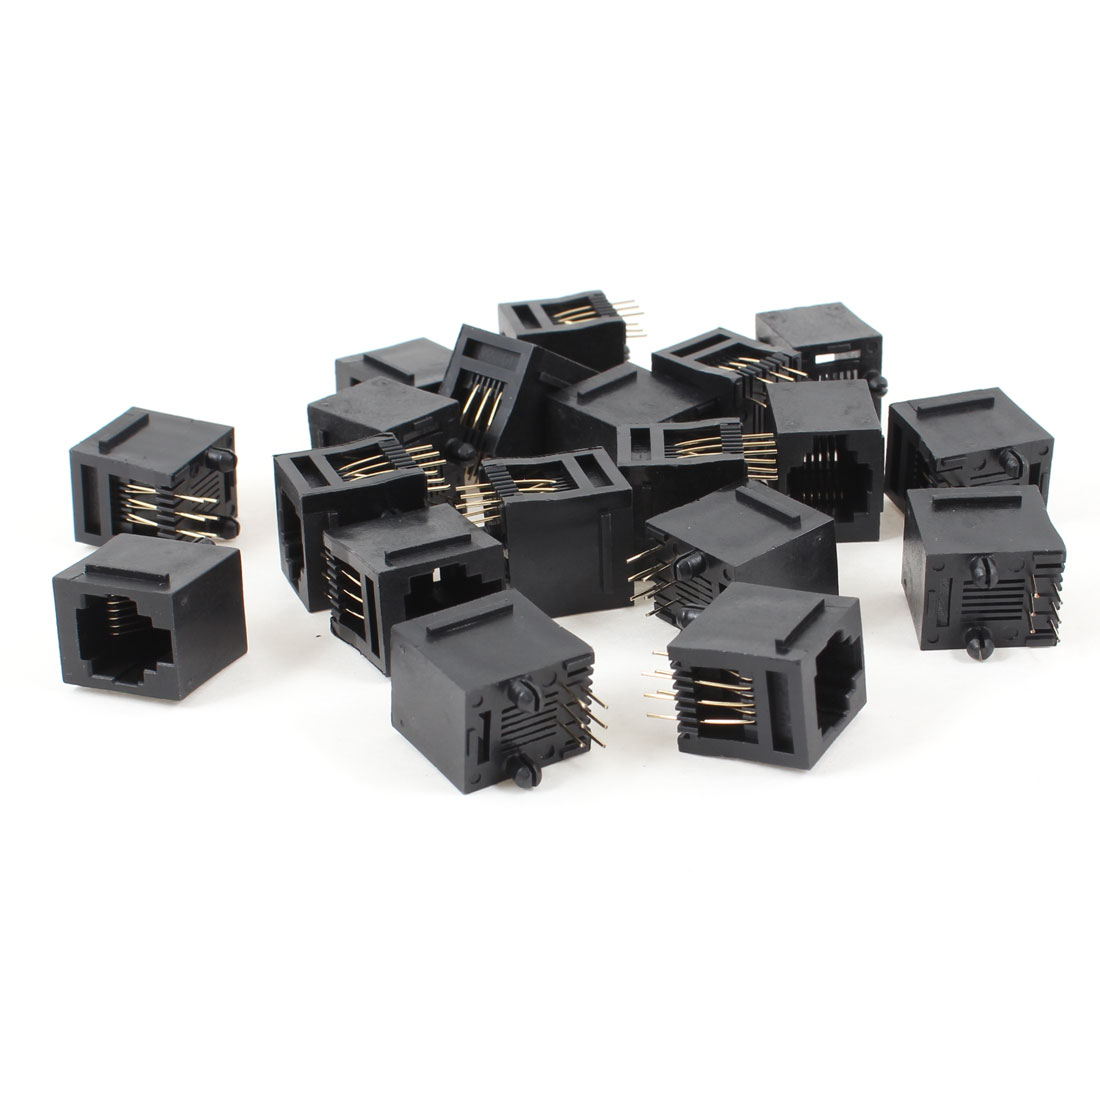 Unique Bargains 19pcs 180 Degree RJ12 6P6C 6 Pin Network LAN Ethernet PCB Jacks Connector Black